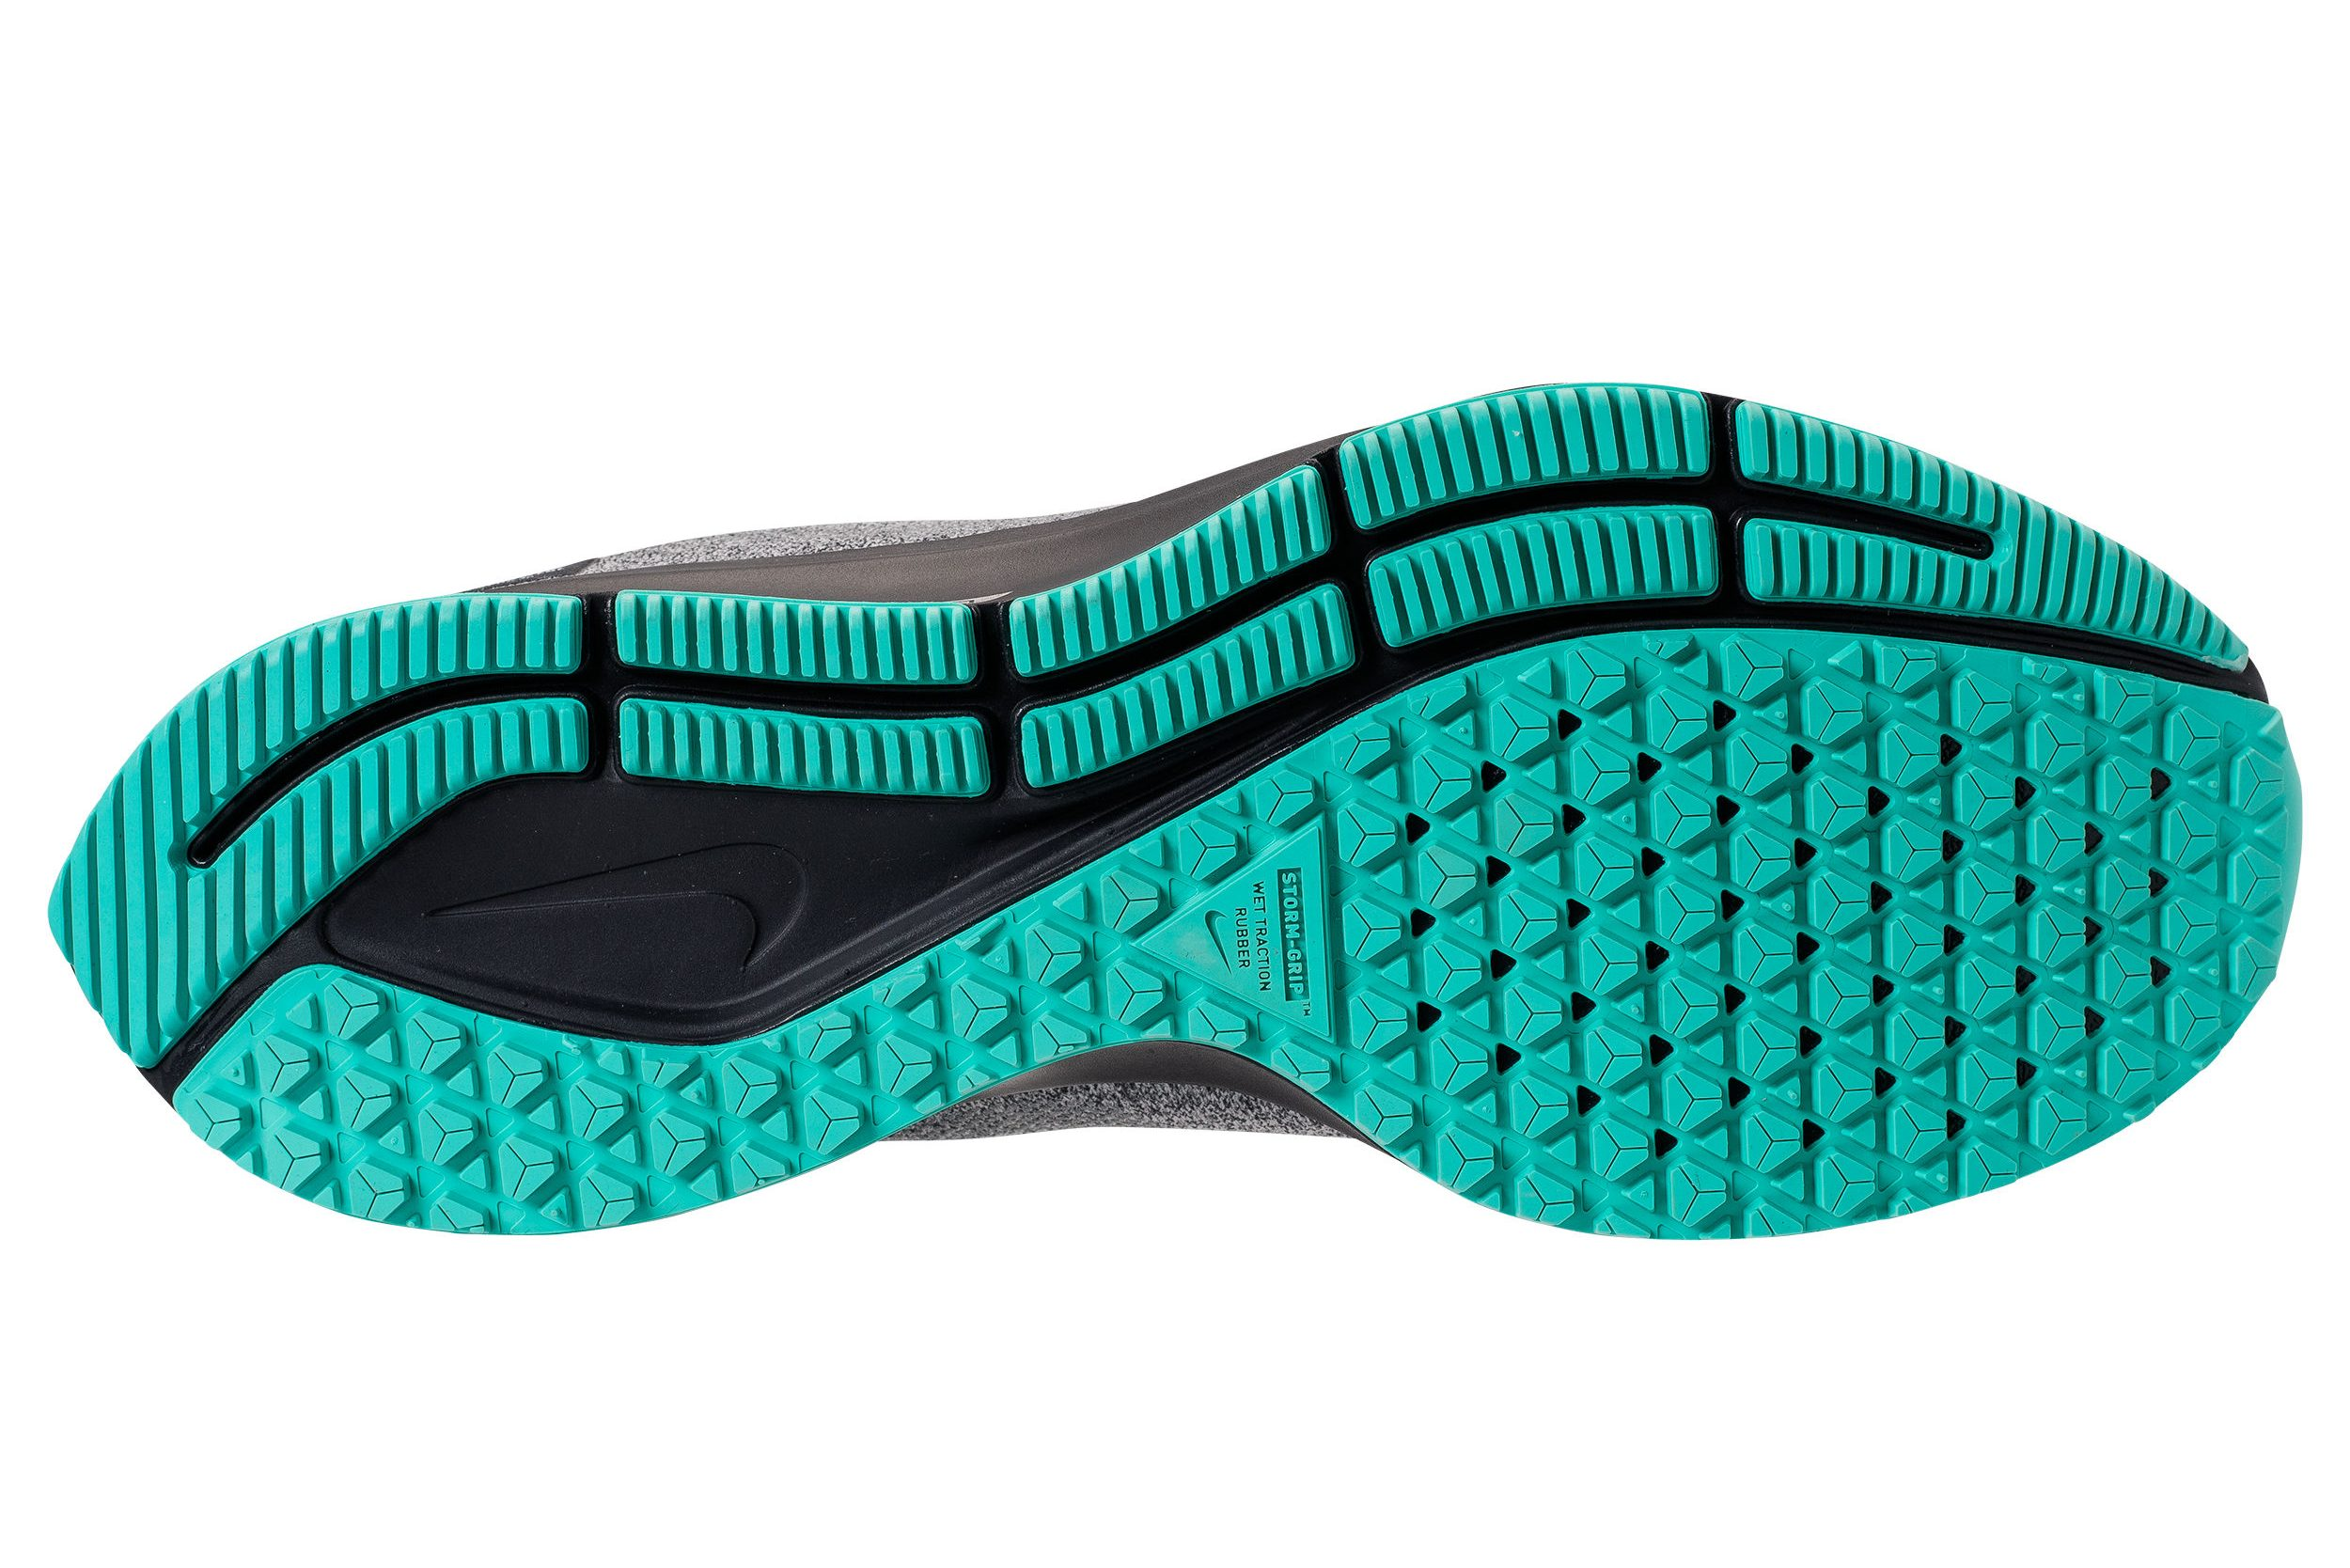 new product 34c35 b39af The Zoom Pegasus 35 Utility is a Winter-Ready Nike Runner ...